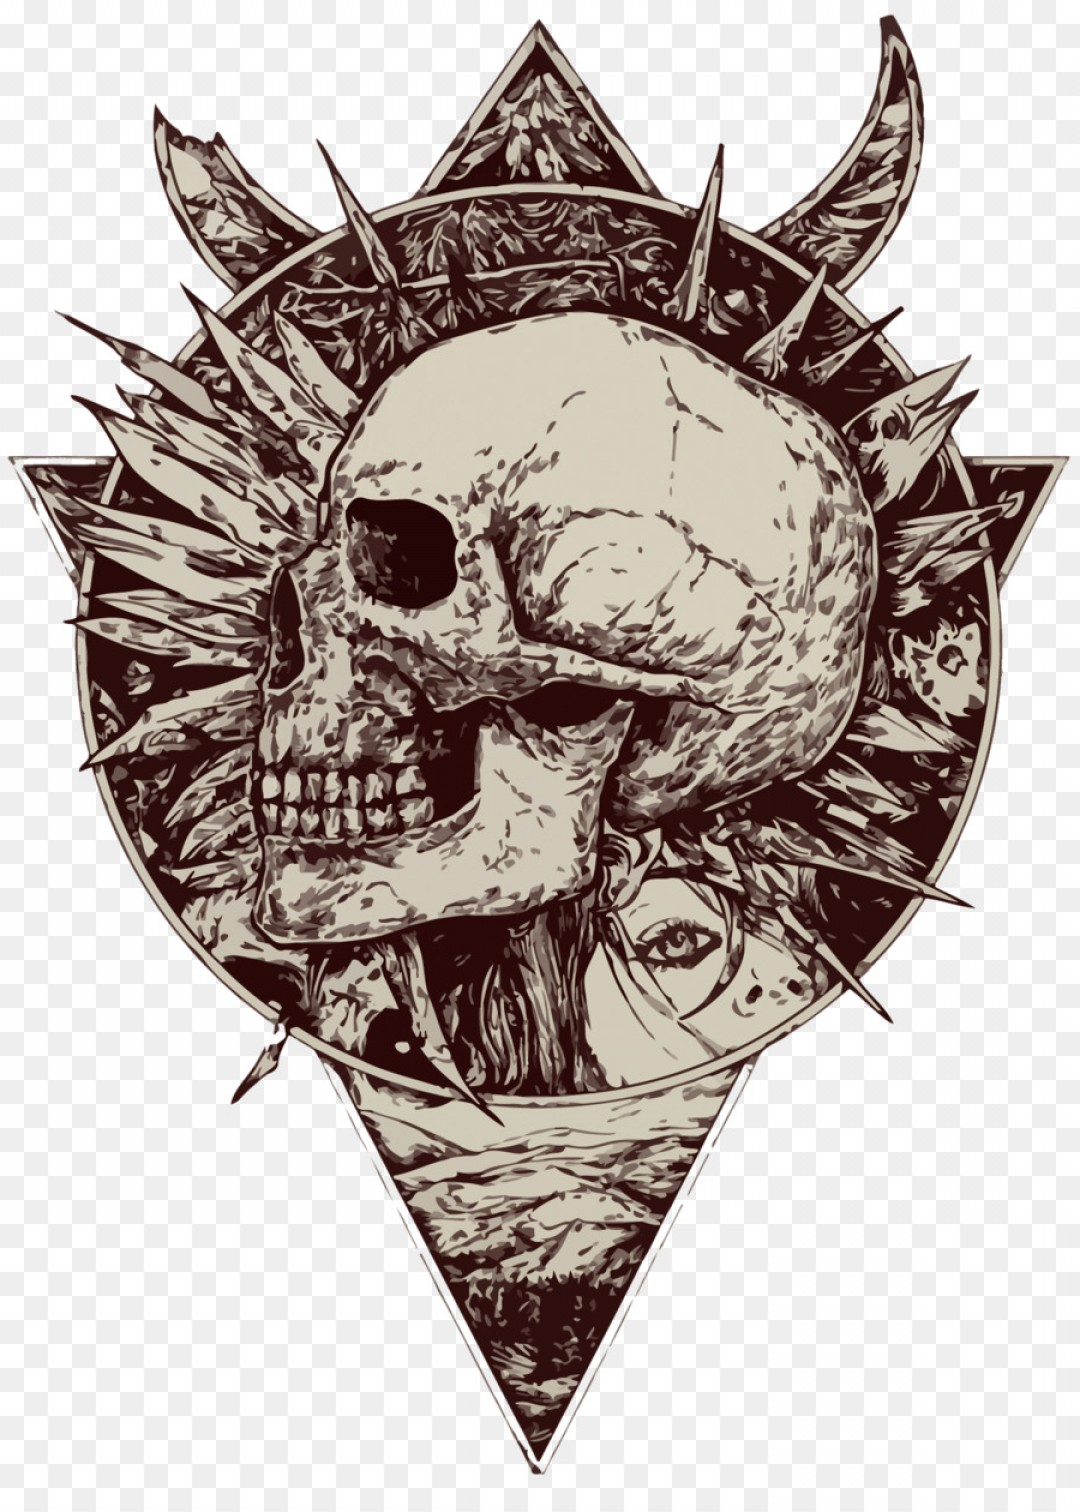 1080x1512 Png Calavera Illustration Vector Skeleton Geekchicpro